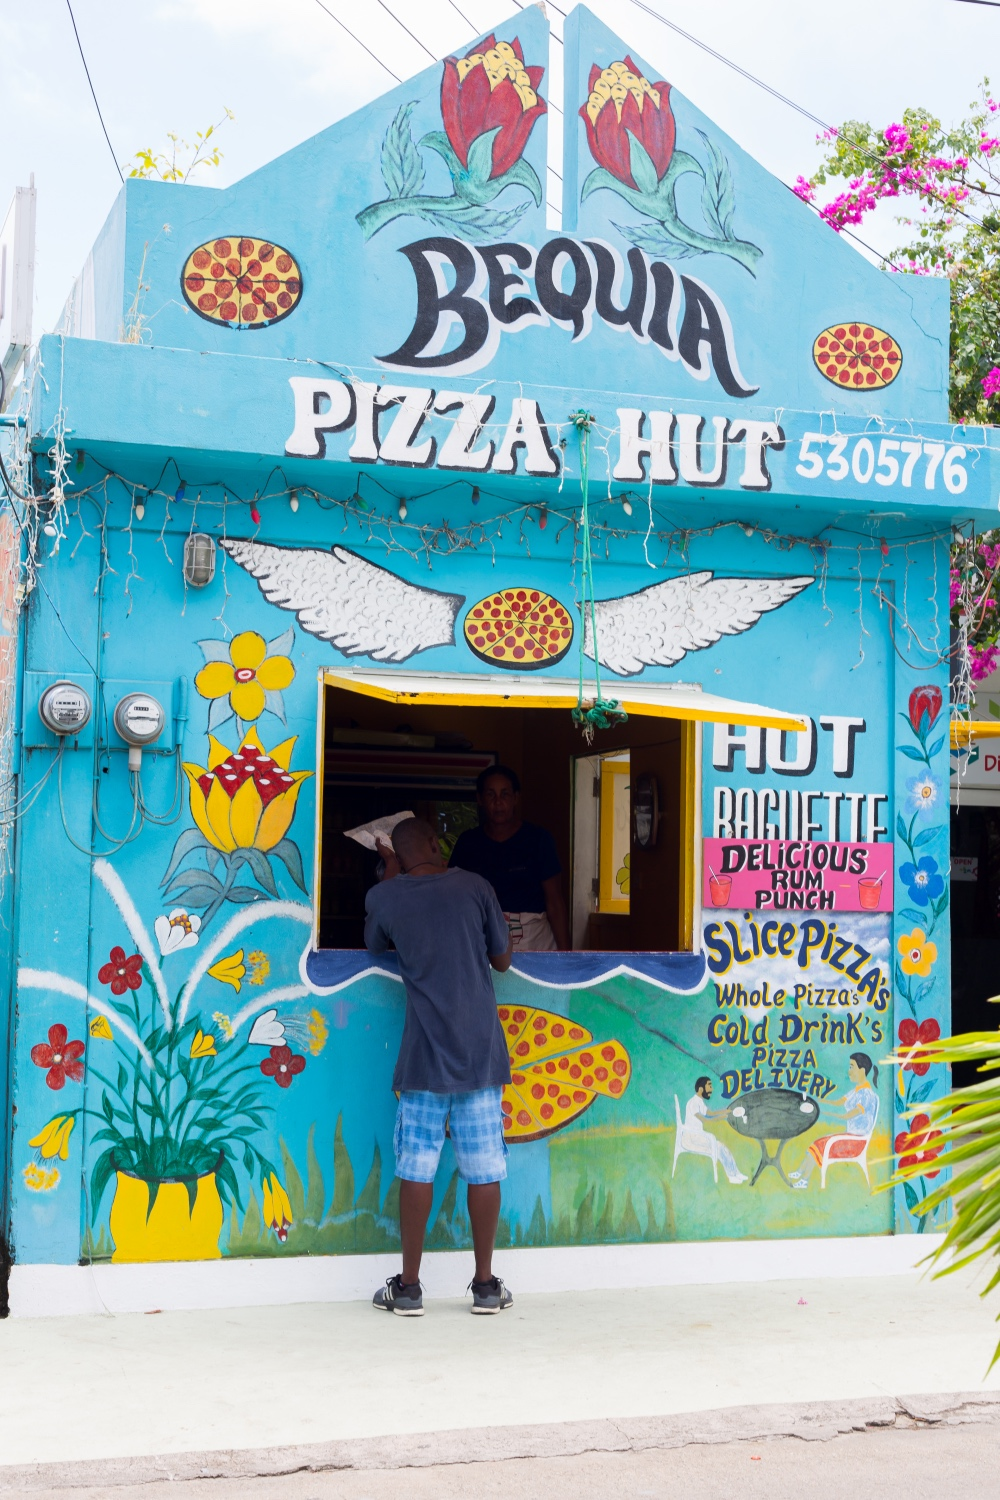 Bequia Pizza Hut, Port Elizabeth